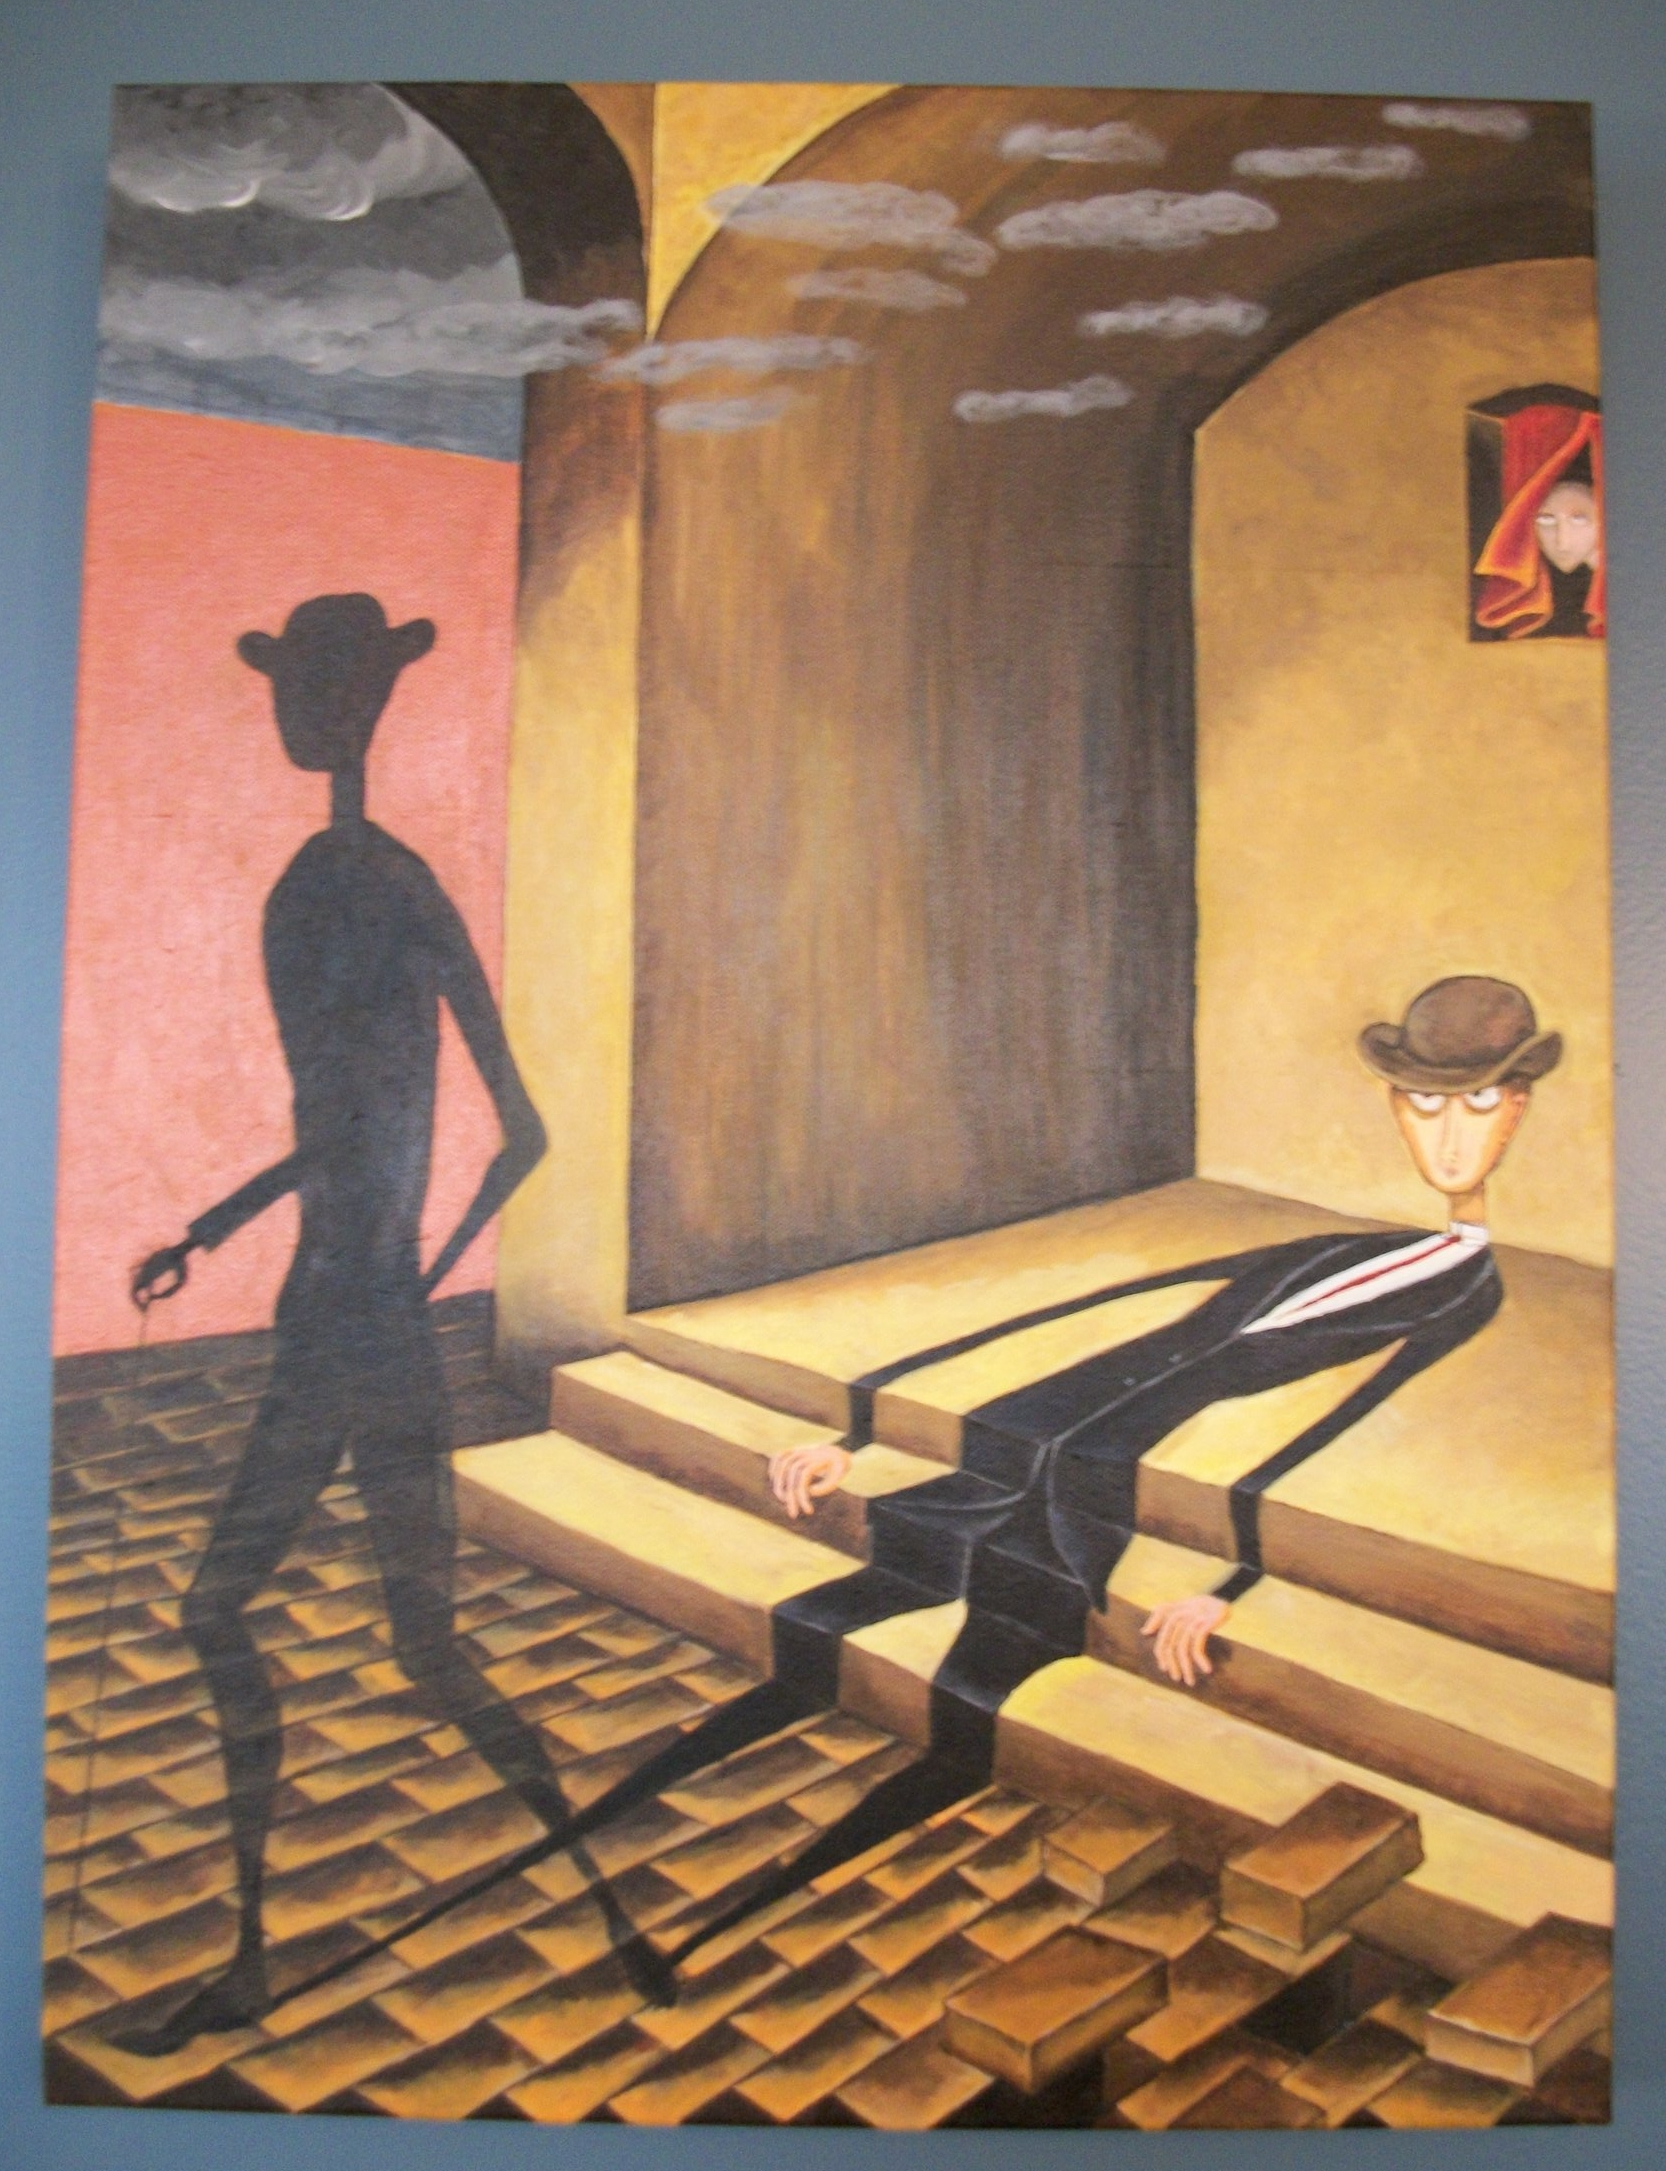 Thoracic Surgery chapter - Remedios Varo replica, acrylic on canvas